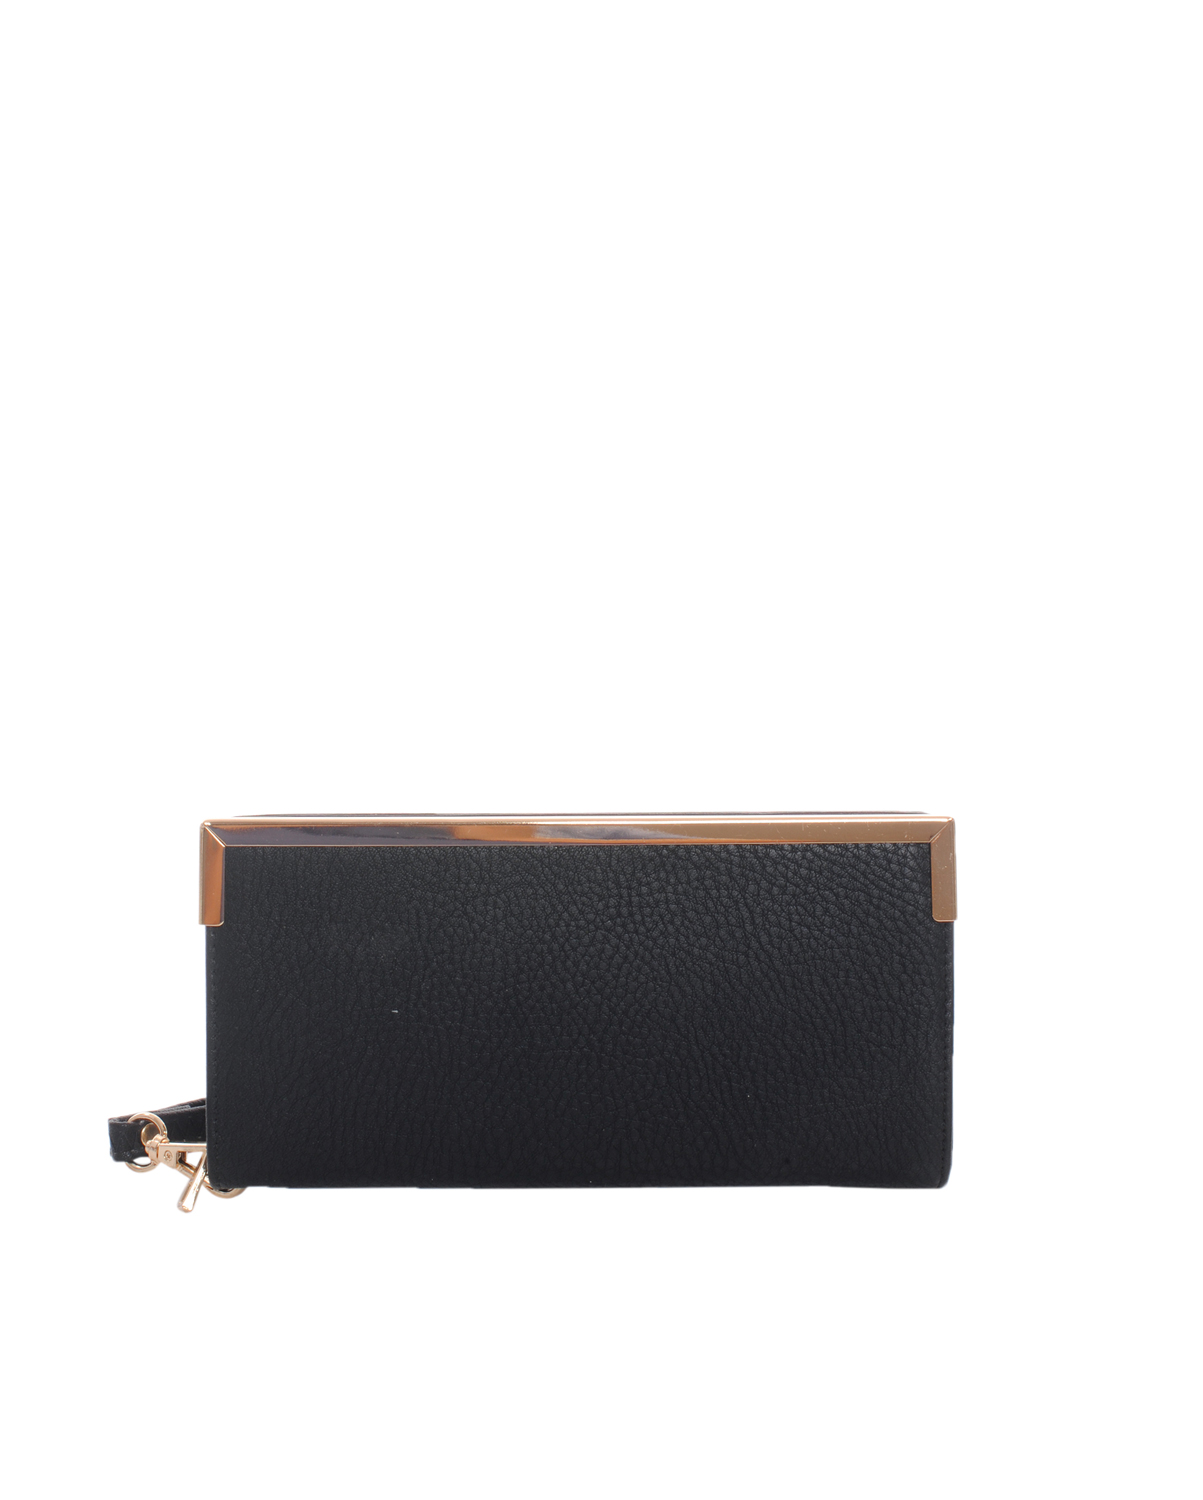 W2602B(BK)-wholesale-wallet-leatherette-solid-color-faux-leather-gold-tone-metal-wristlet-strap-compartment-(0).jpg